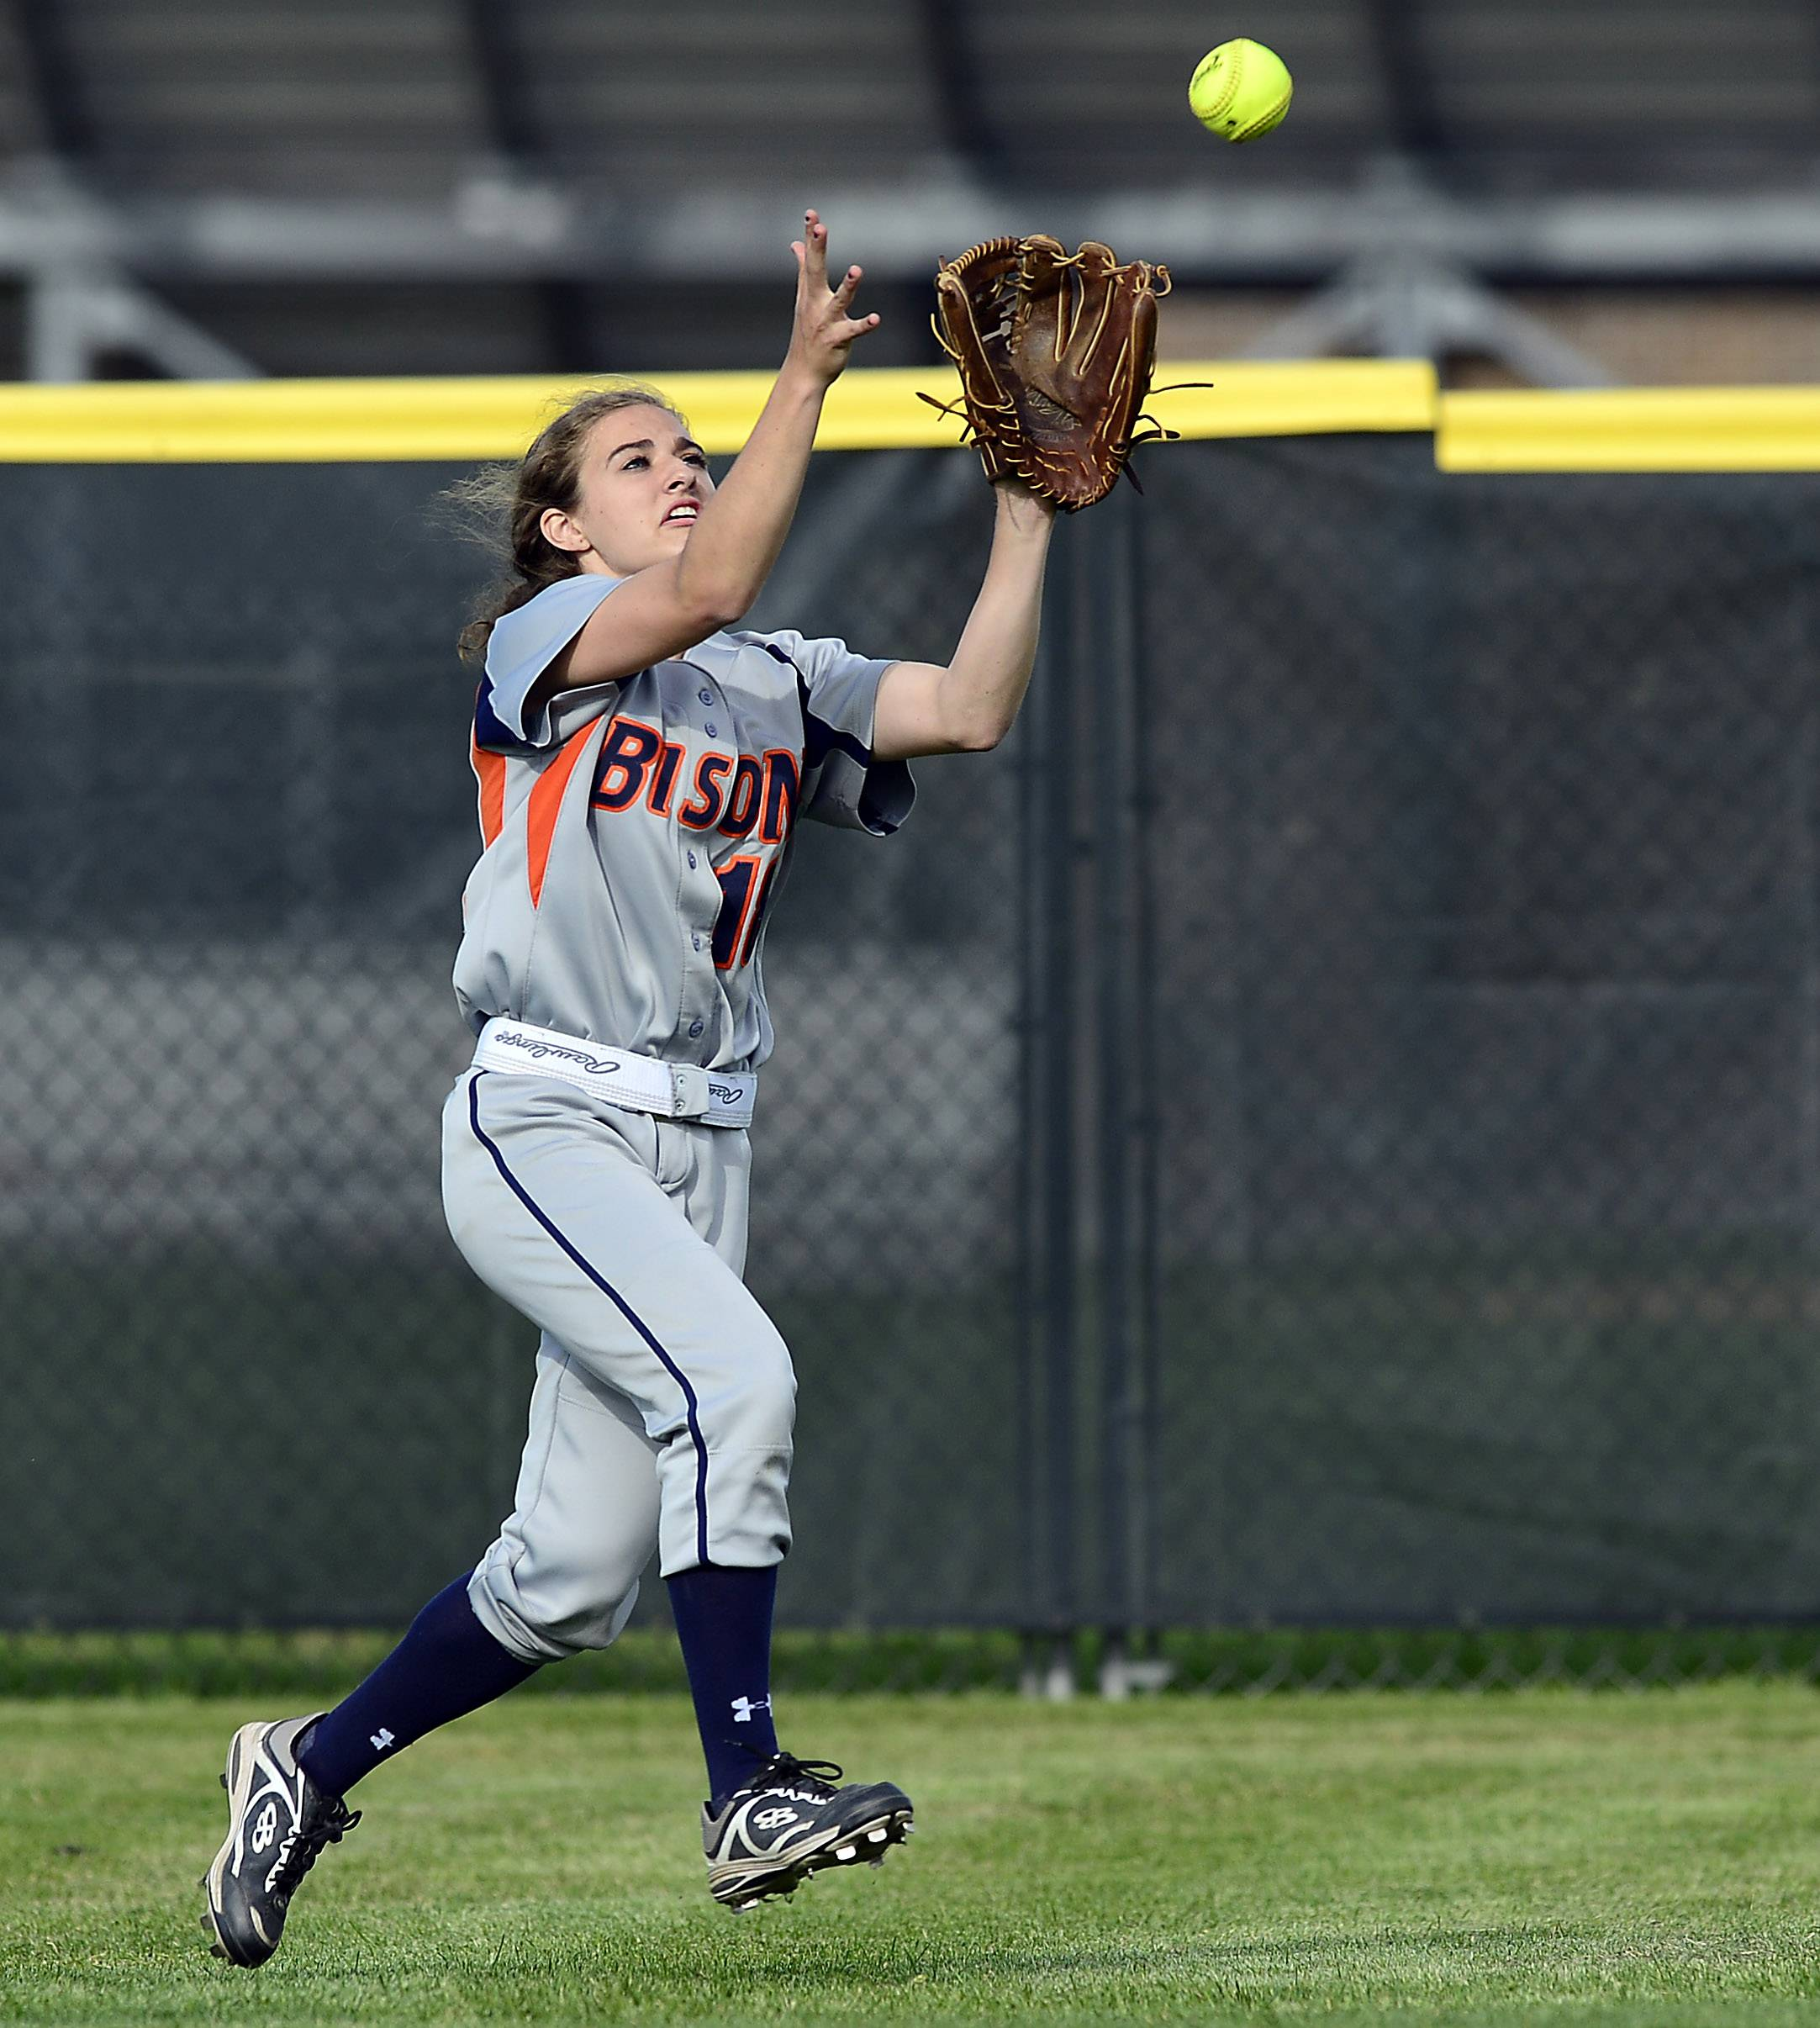 Buffalo Grove's Caitlin Catino makes the catch off the bat of Conant's Rachel O'Malley in the bottom of the third inning in the Mid-Suburban League championship softball game at Conant on Thursday.